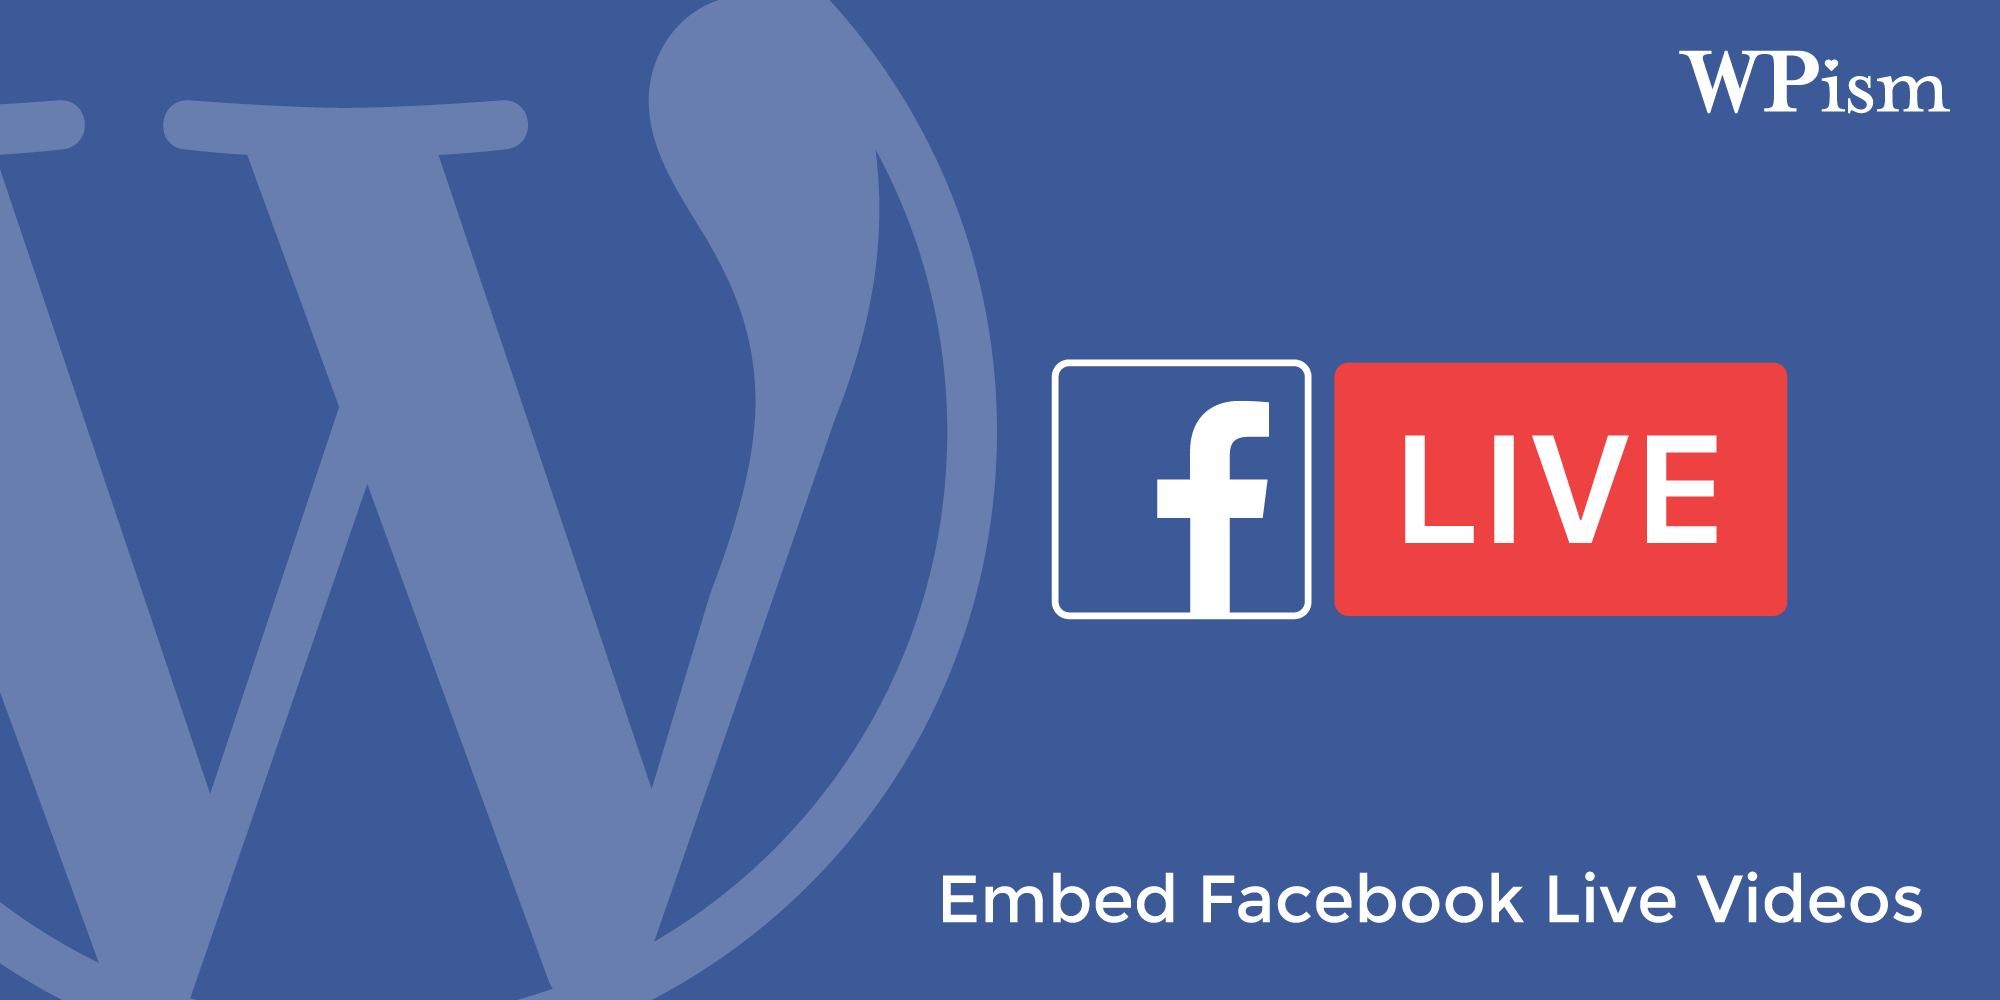 How to Embed Facebook Live Videos in WordPress Website - Complete Guide